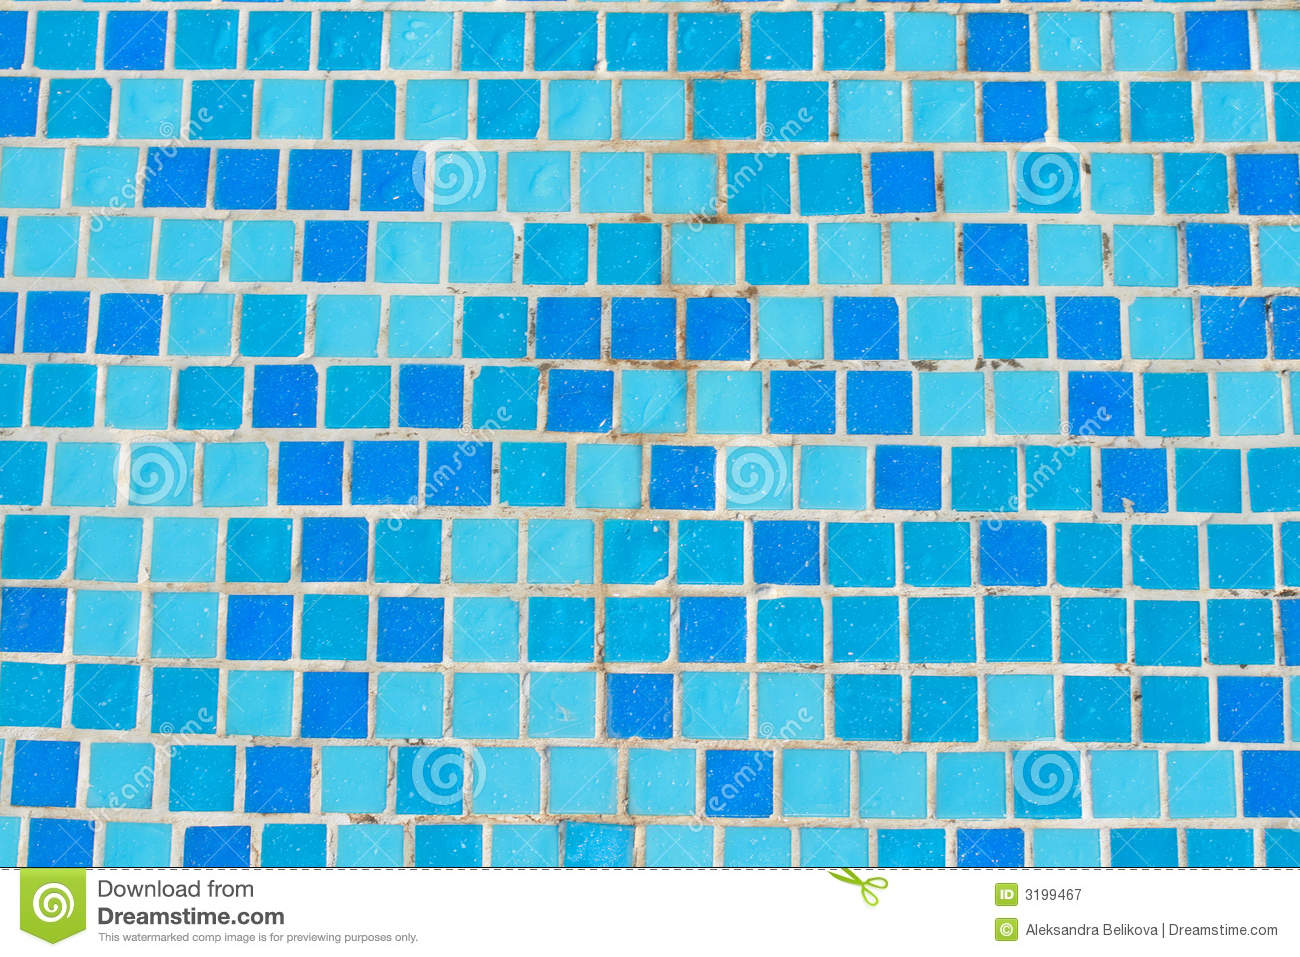 30 Pictures Of Mosaic Tile Patterns For Bathrooms